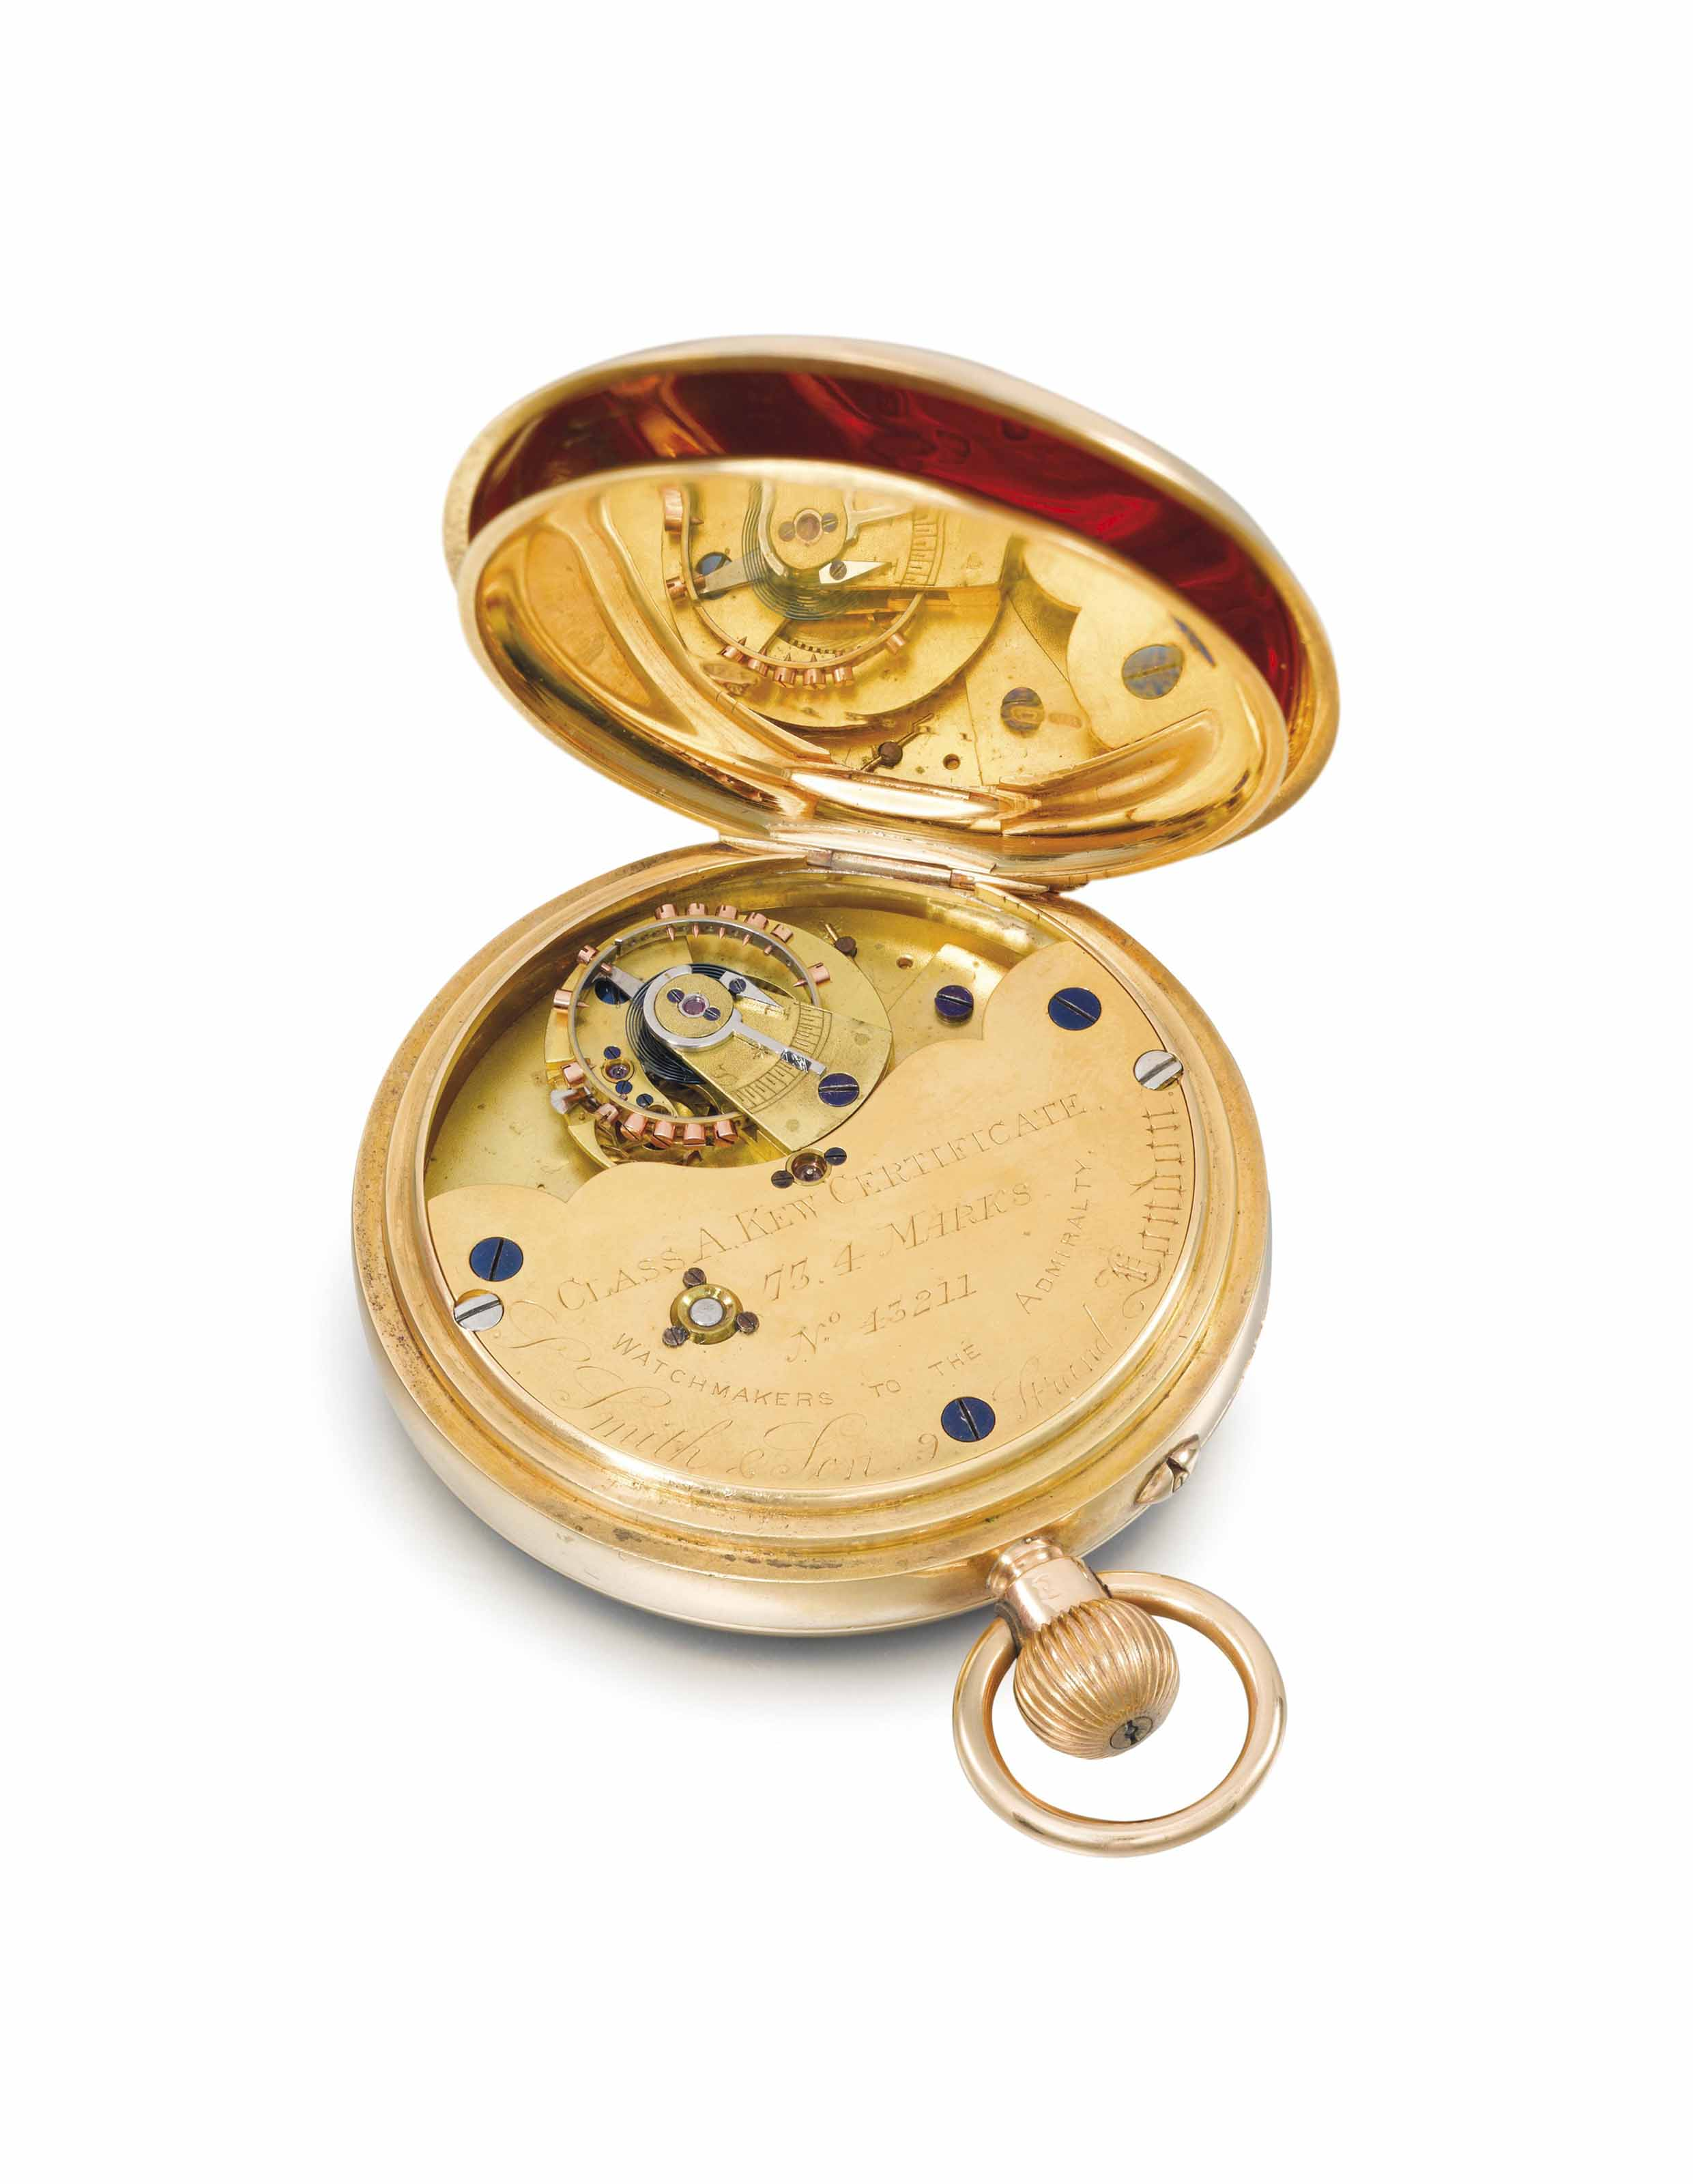 Smith & Sons. An unusual 18K gold openface keyless pocket chronometer with 52 1/2 minute karussel with Class A Kew Certificate